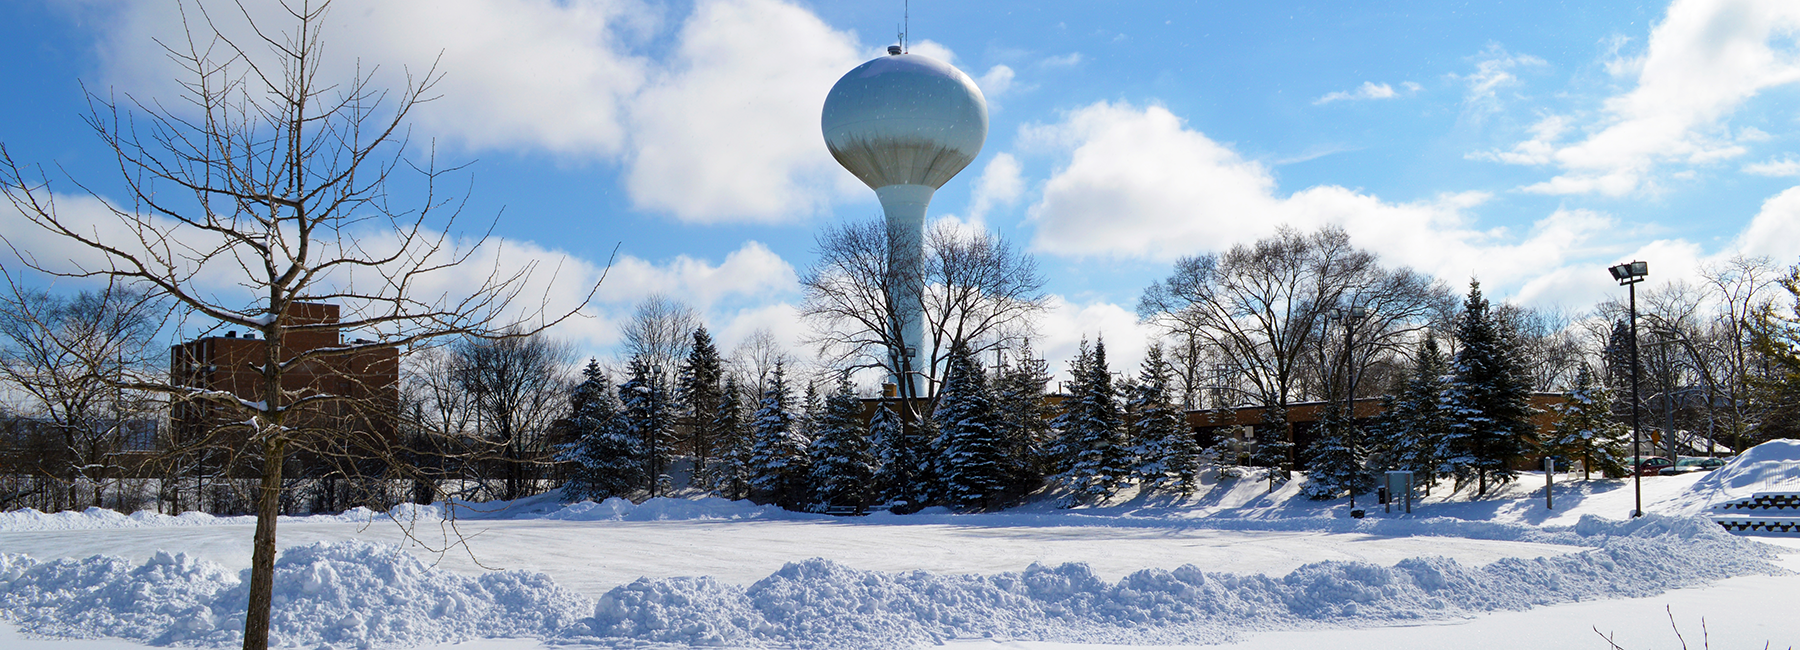 Water tower and snow on the ground